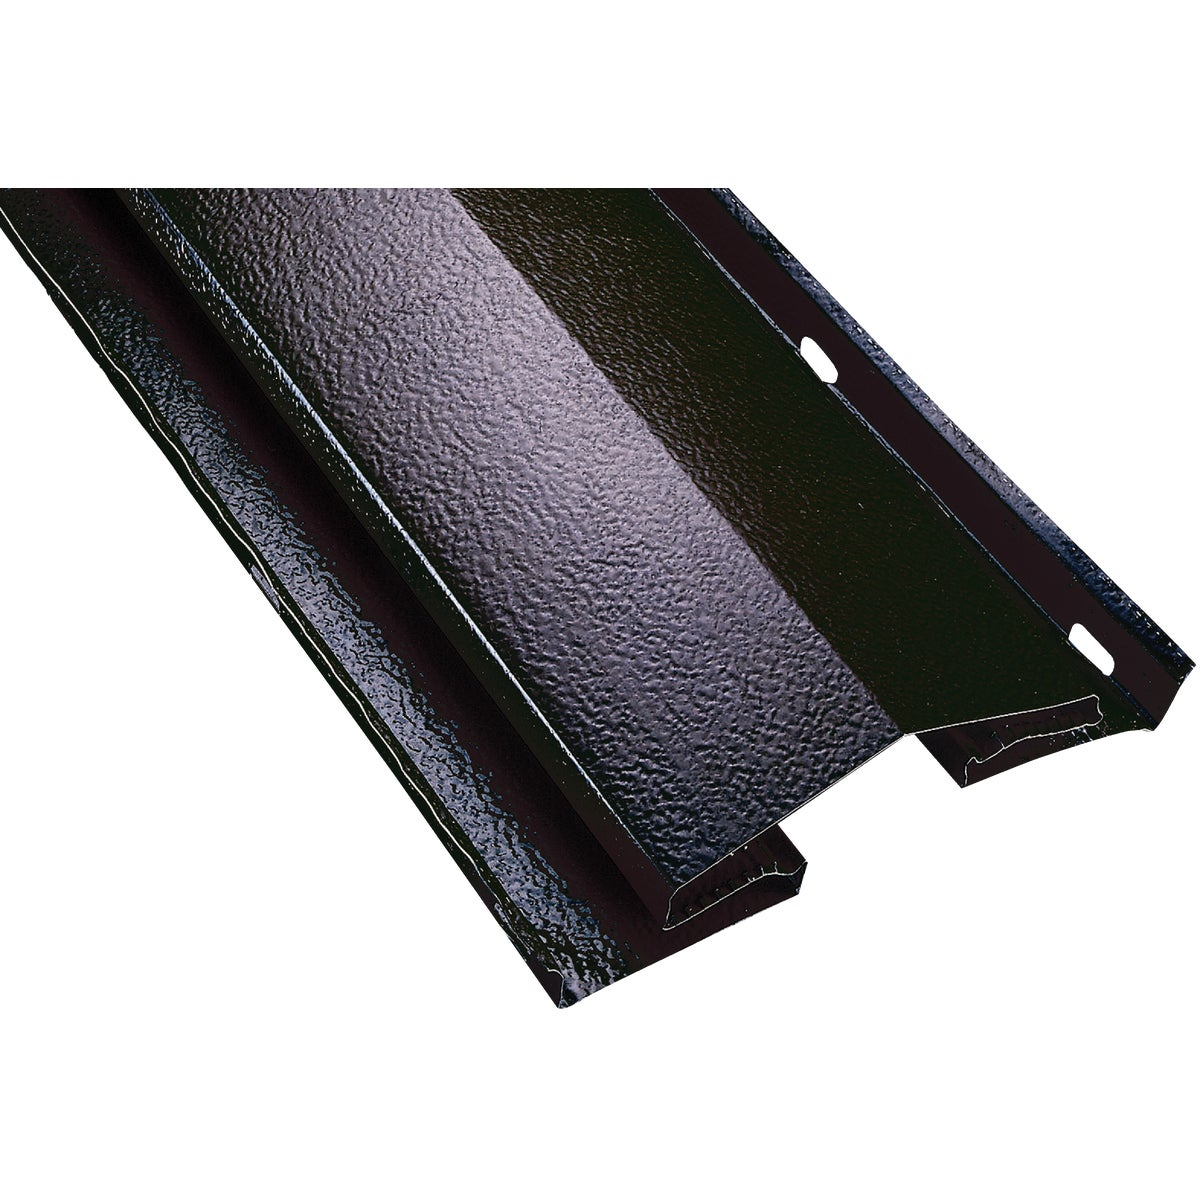 10' BLK ALUM RIDGE VENT - 84403 by Air Vent Inc